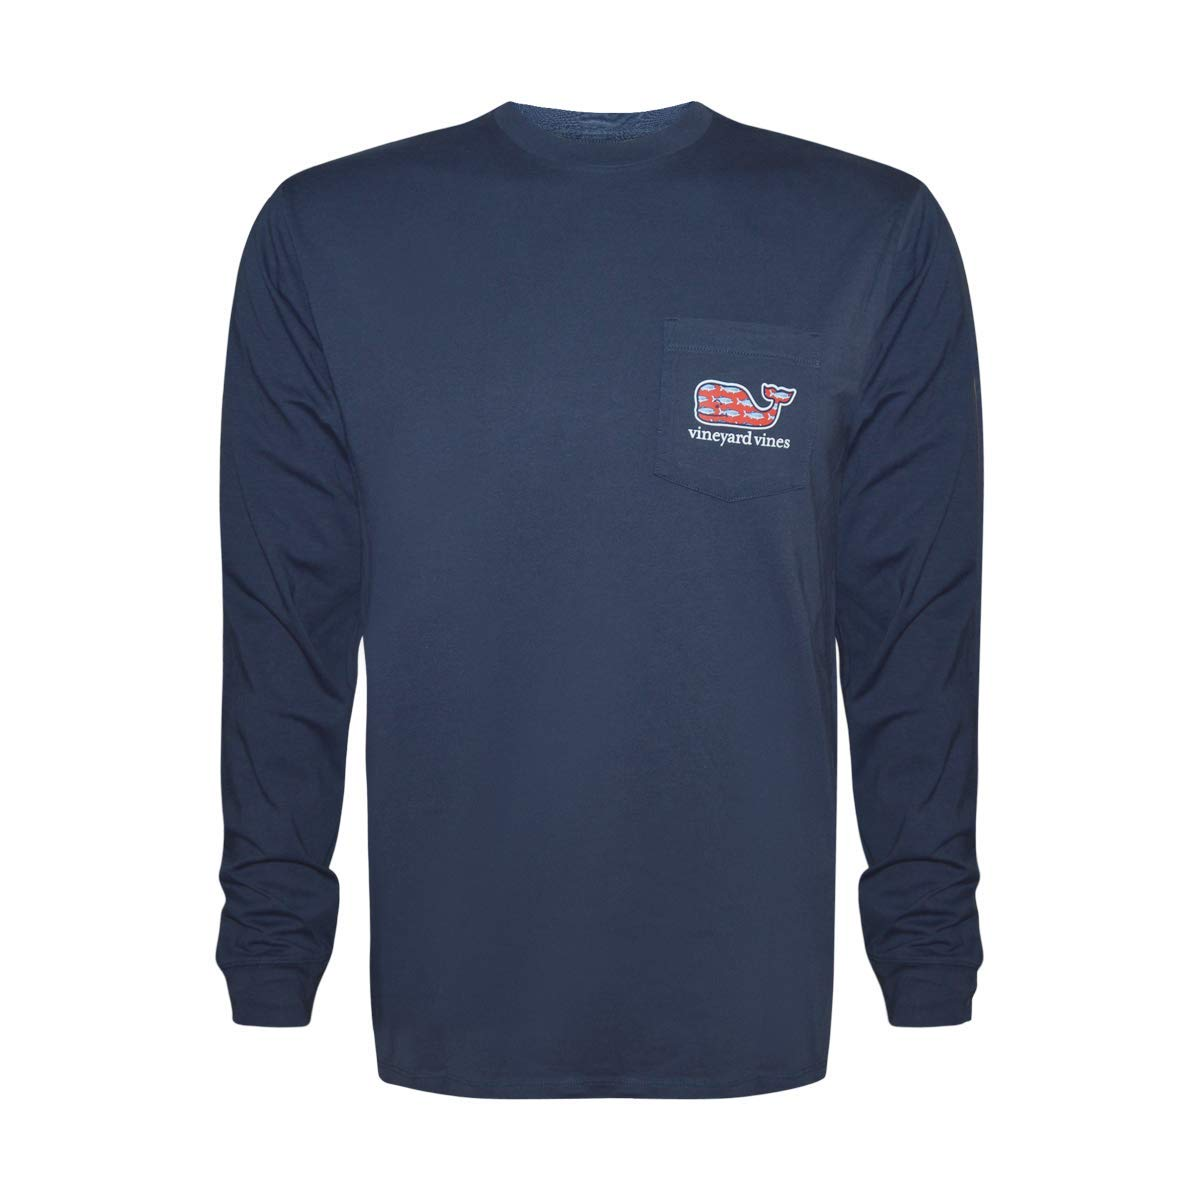 c233c4d93ca7 Amazon.com: Vineyard Vines Mens Cotton Graphic T-Shirt: Clothing